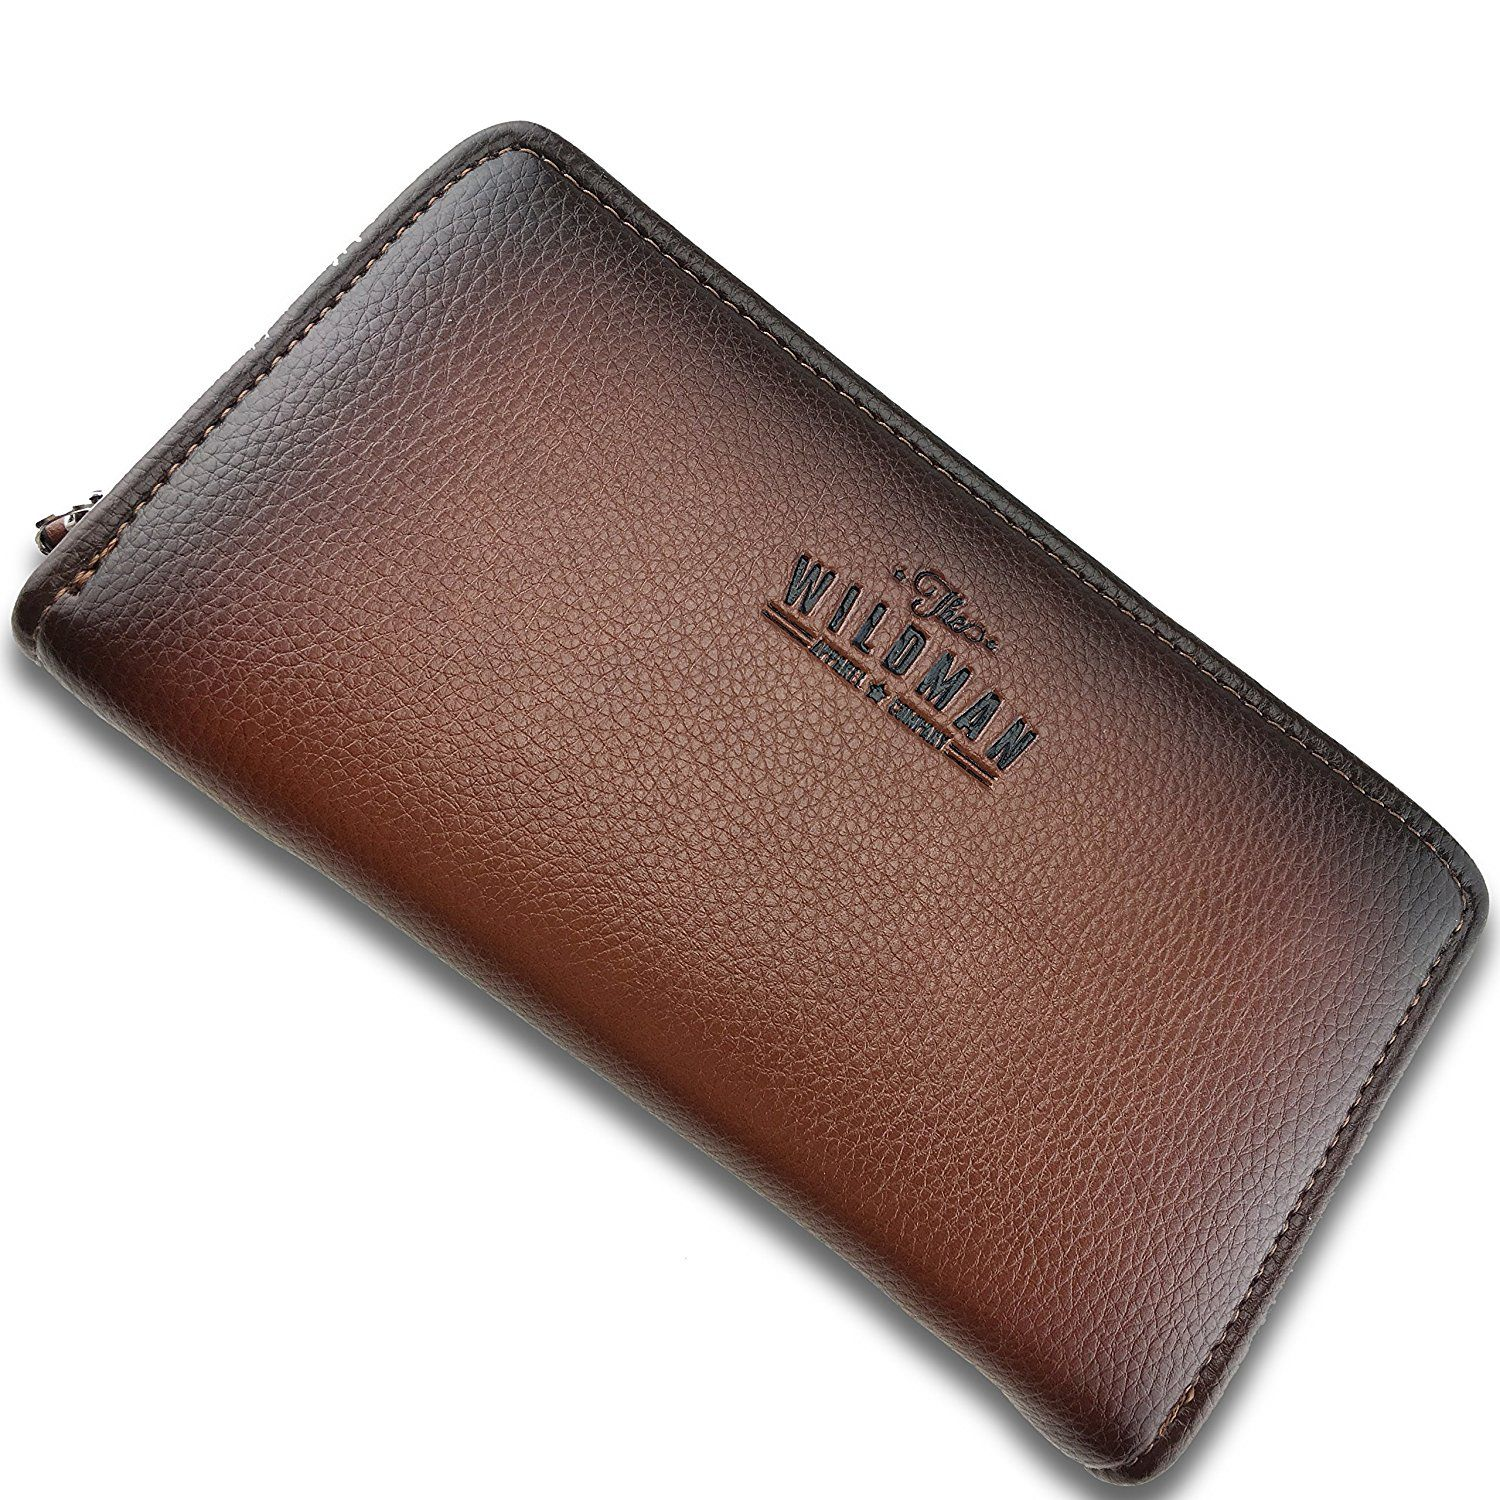 ef2a3ee788c5 Wildman travel document holder